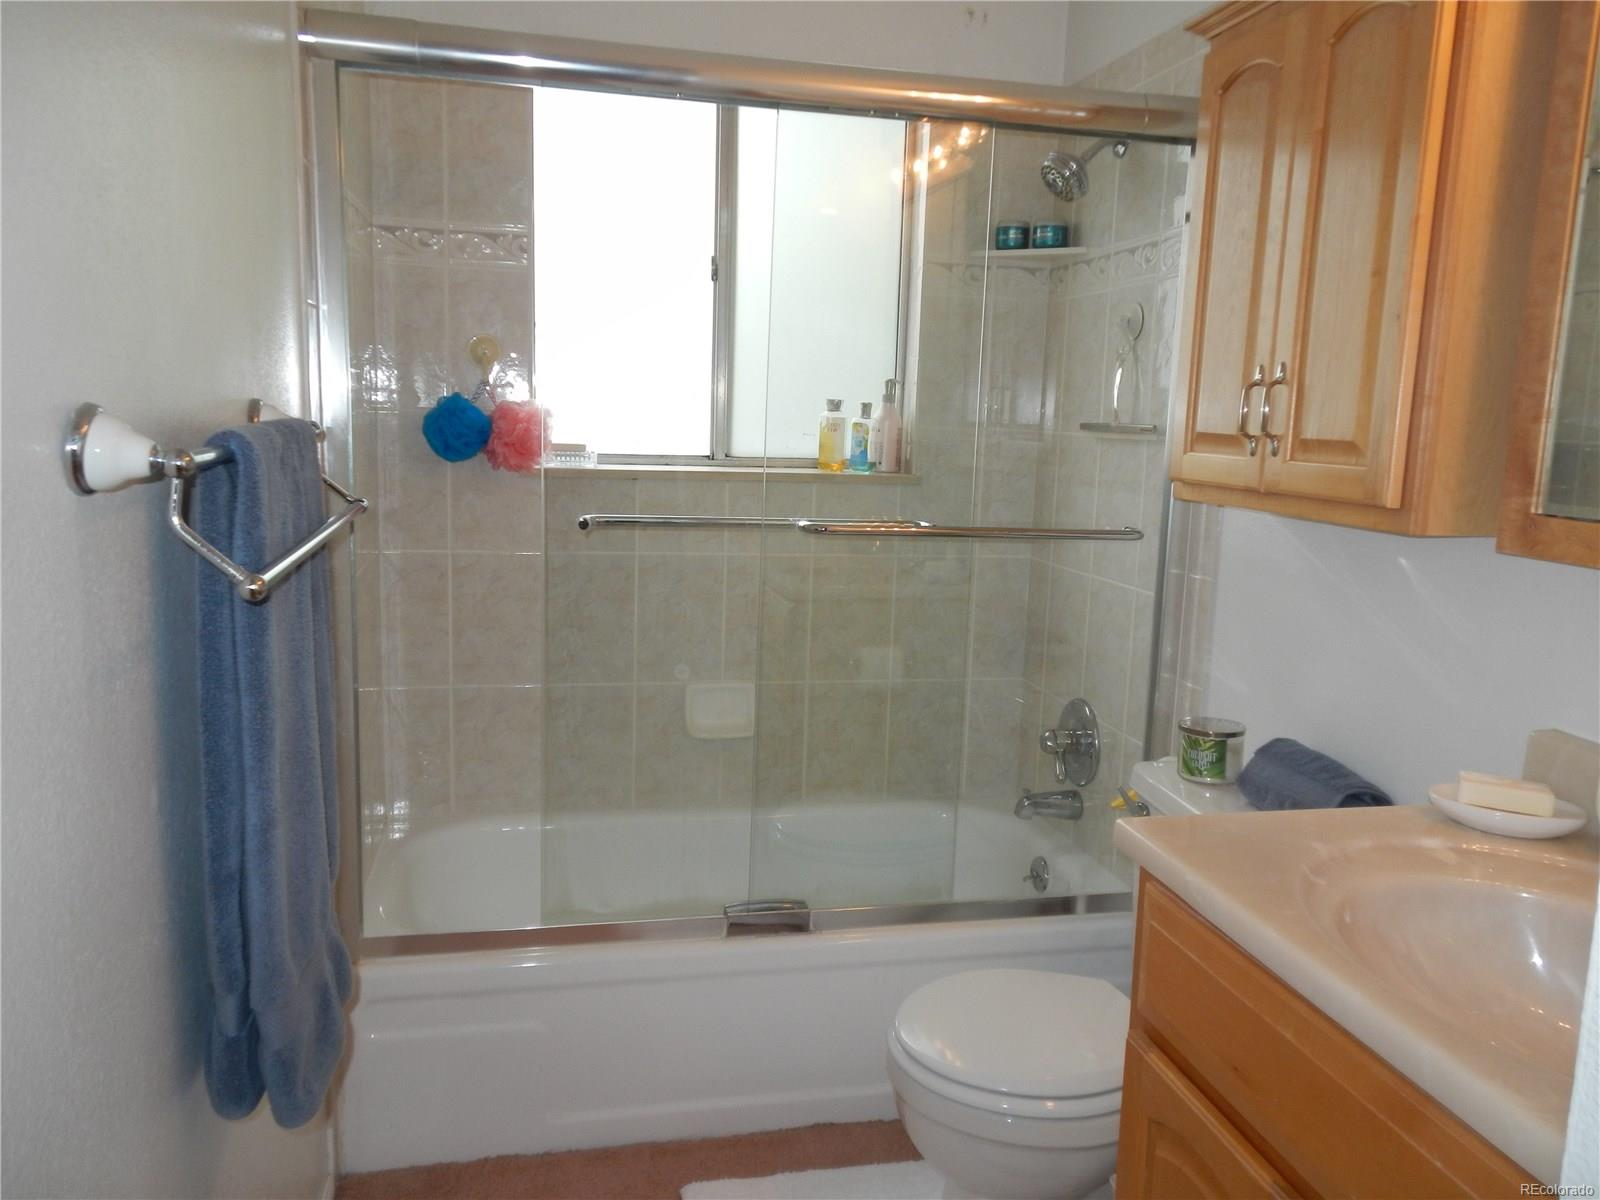 UPDATED FULL BATH ON UPPER LEVEL WITH DOOR TO MASTER